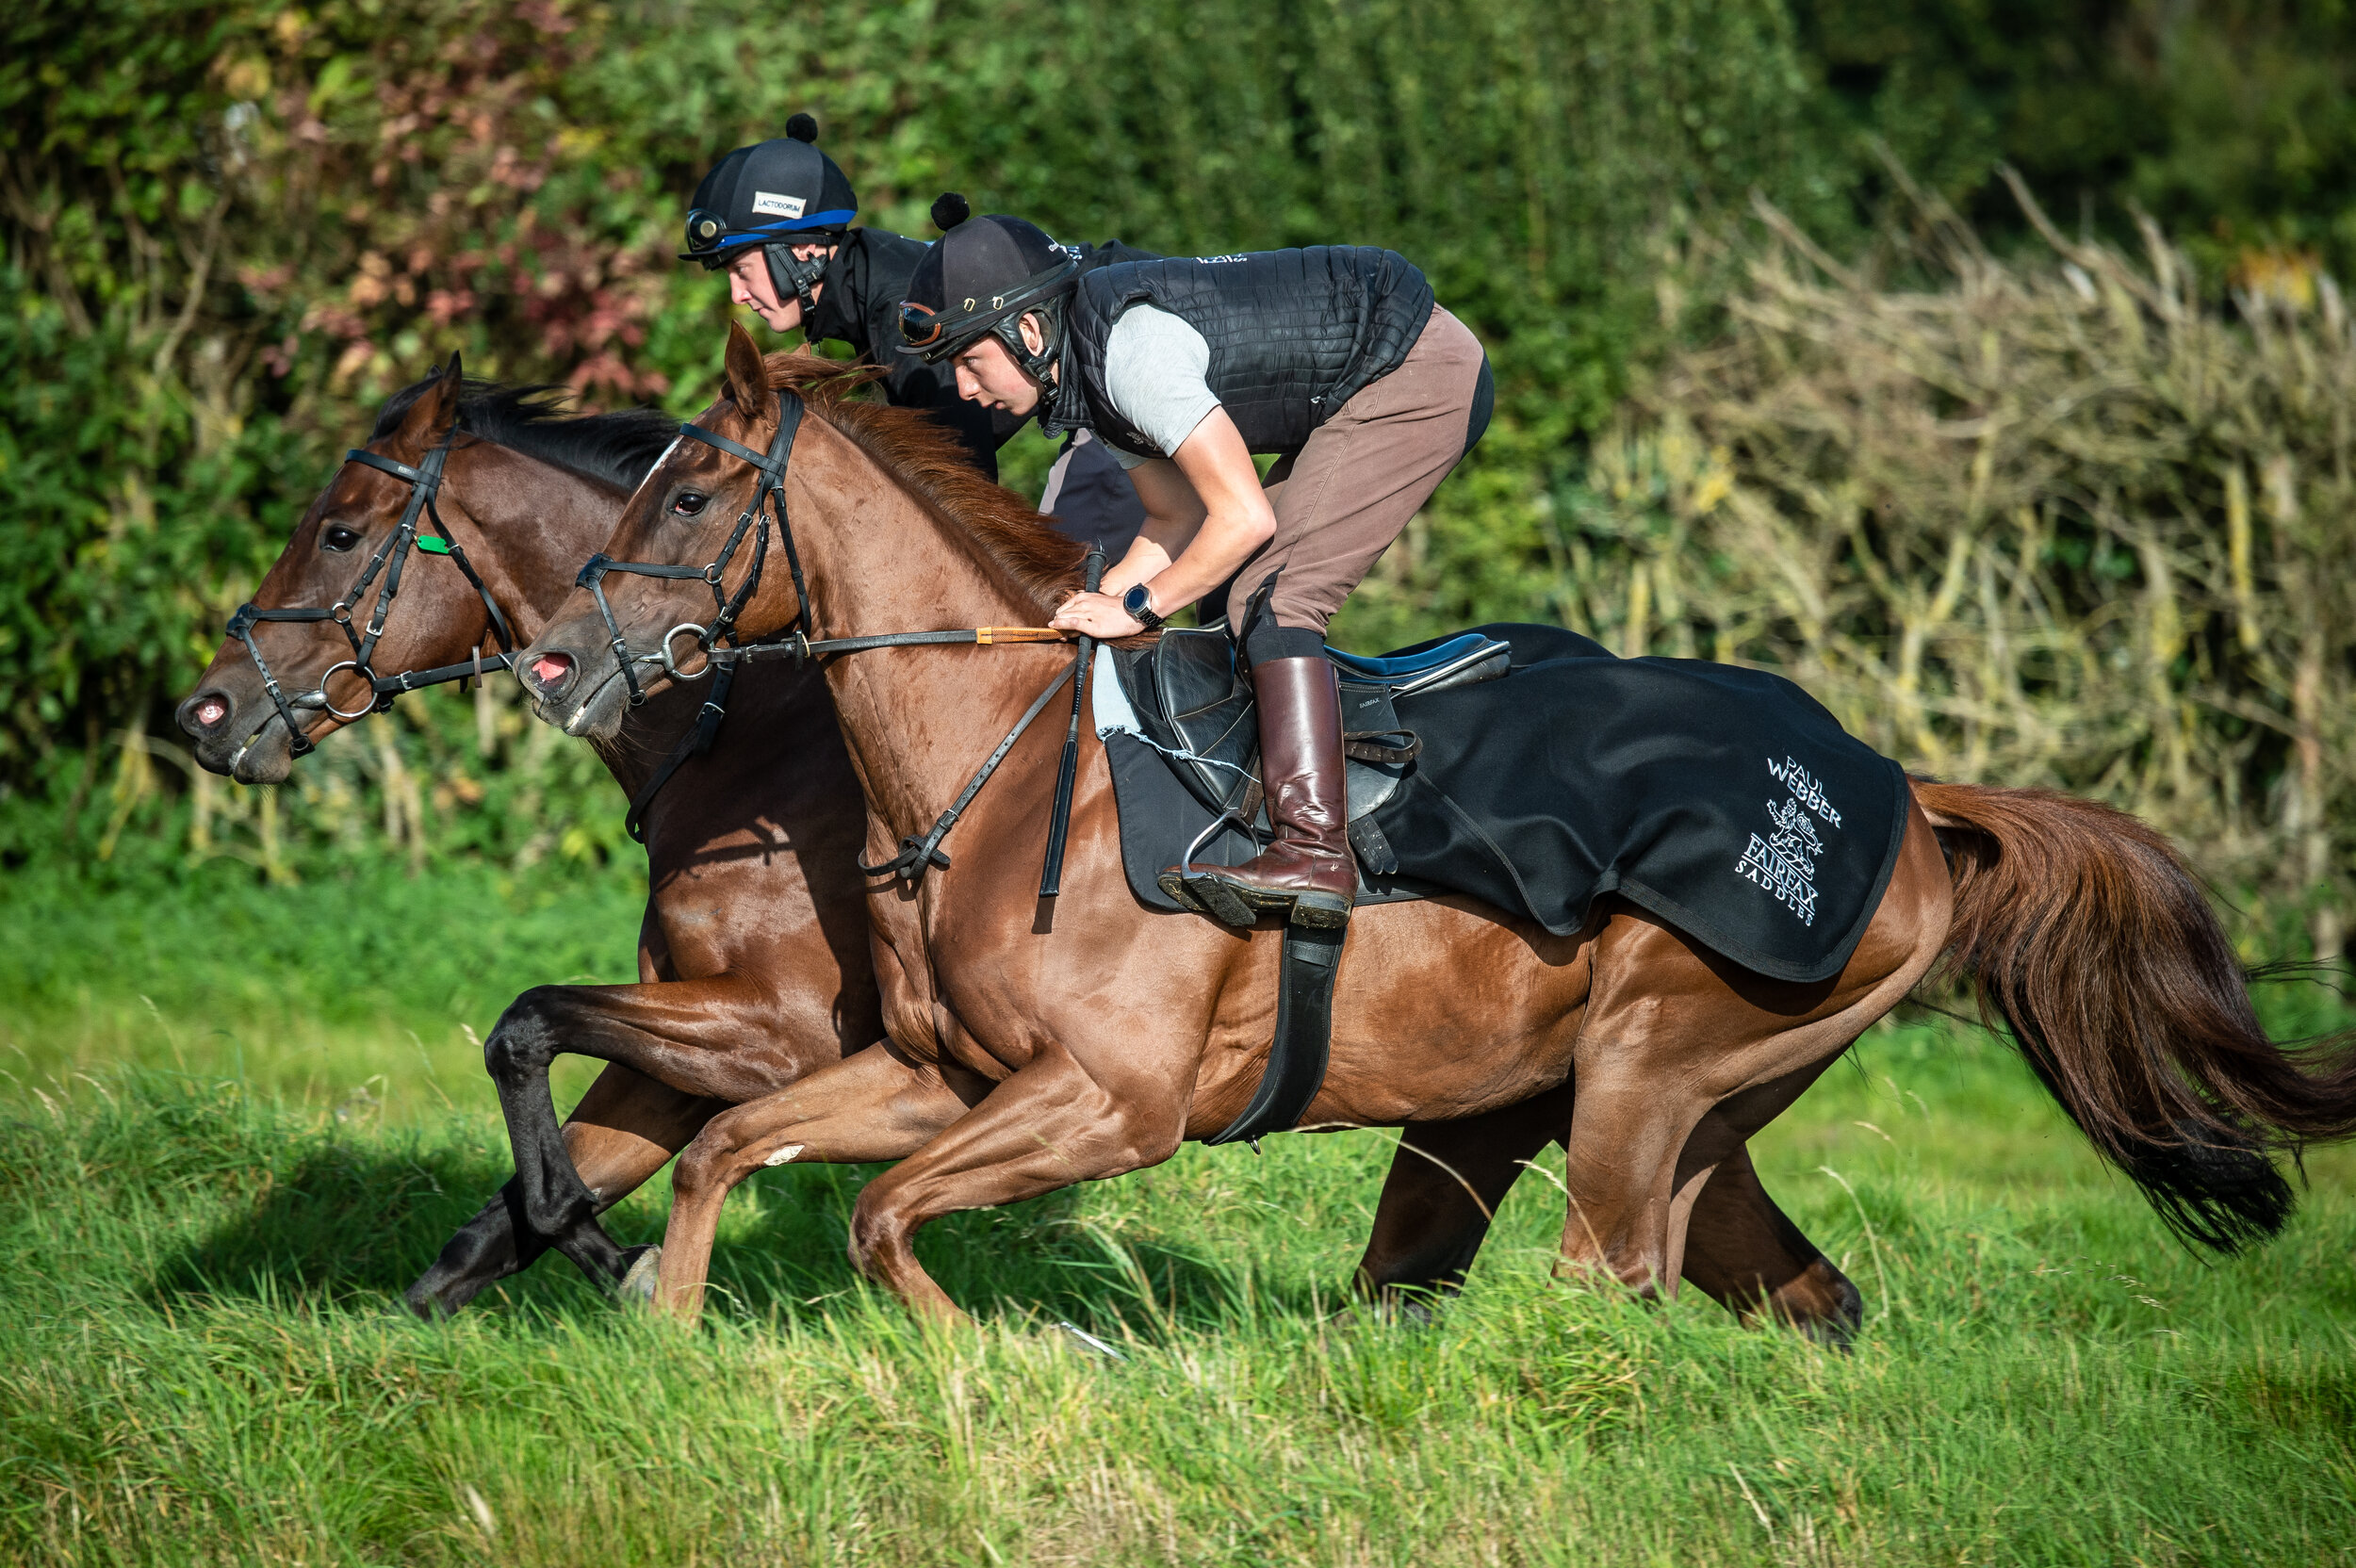 Saddle + Half Pads - The effect on race saddle pressures and gallop kinematics